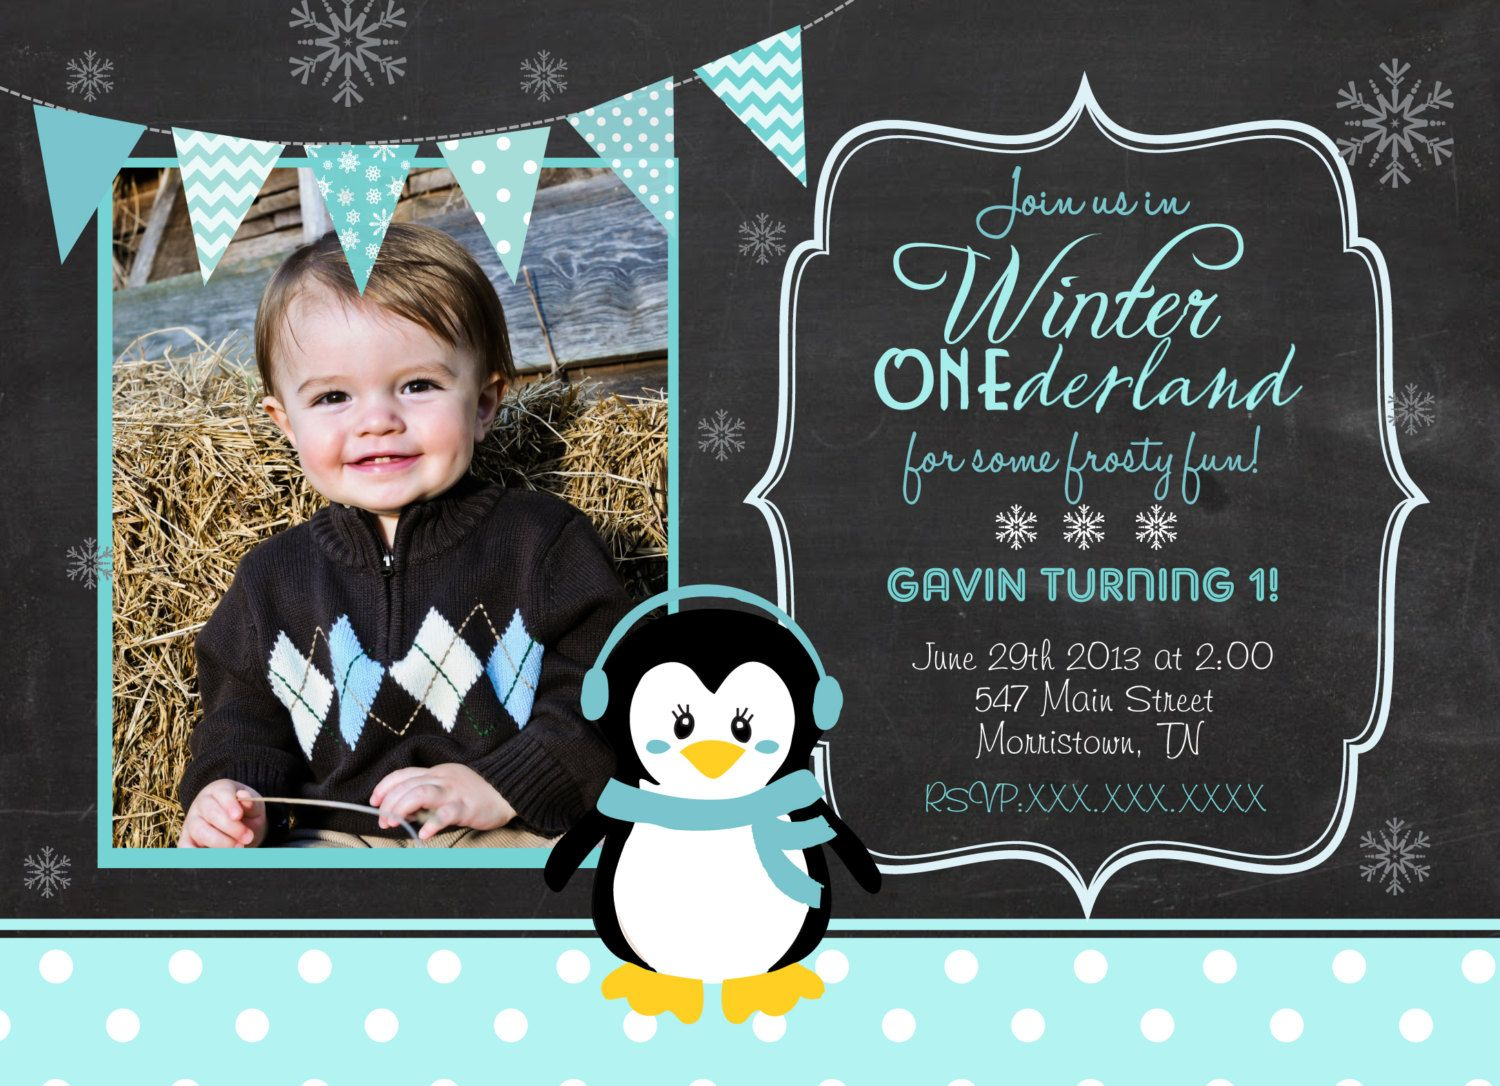 wording ideas forst birthday party invitation%0A Chalk Winter Onederland  st Birthday by MakinMemoriesOnPaper